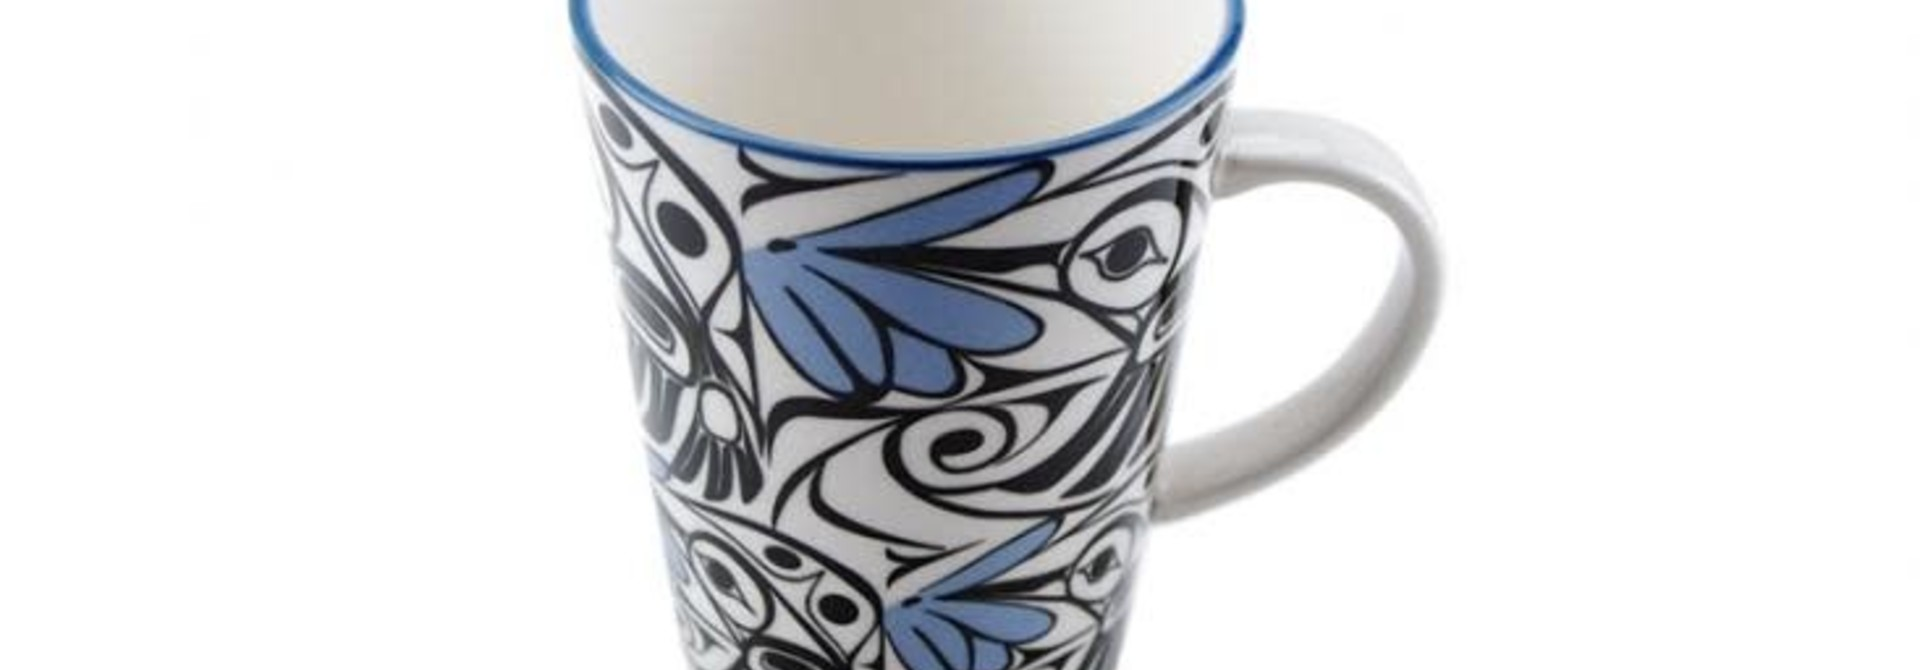 Porcelain Mug -Hummingbird by Bill Helin